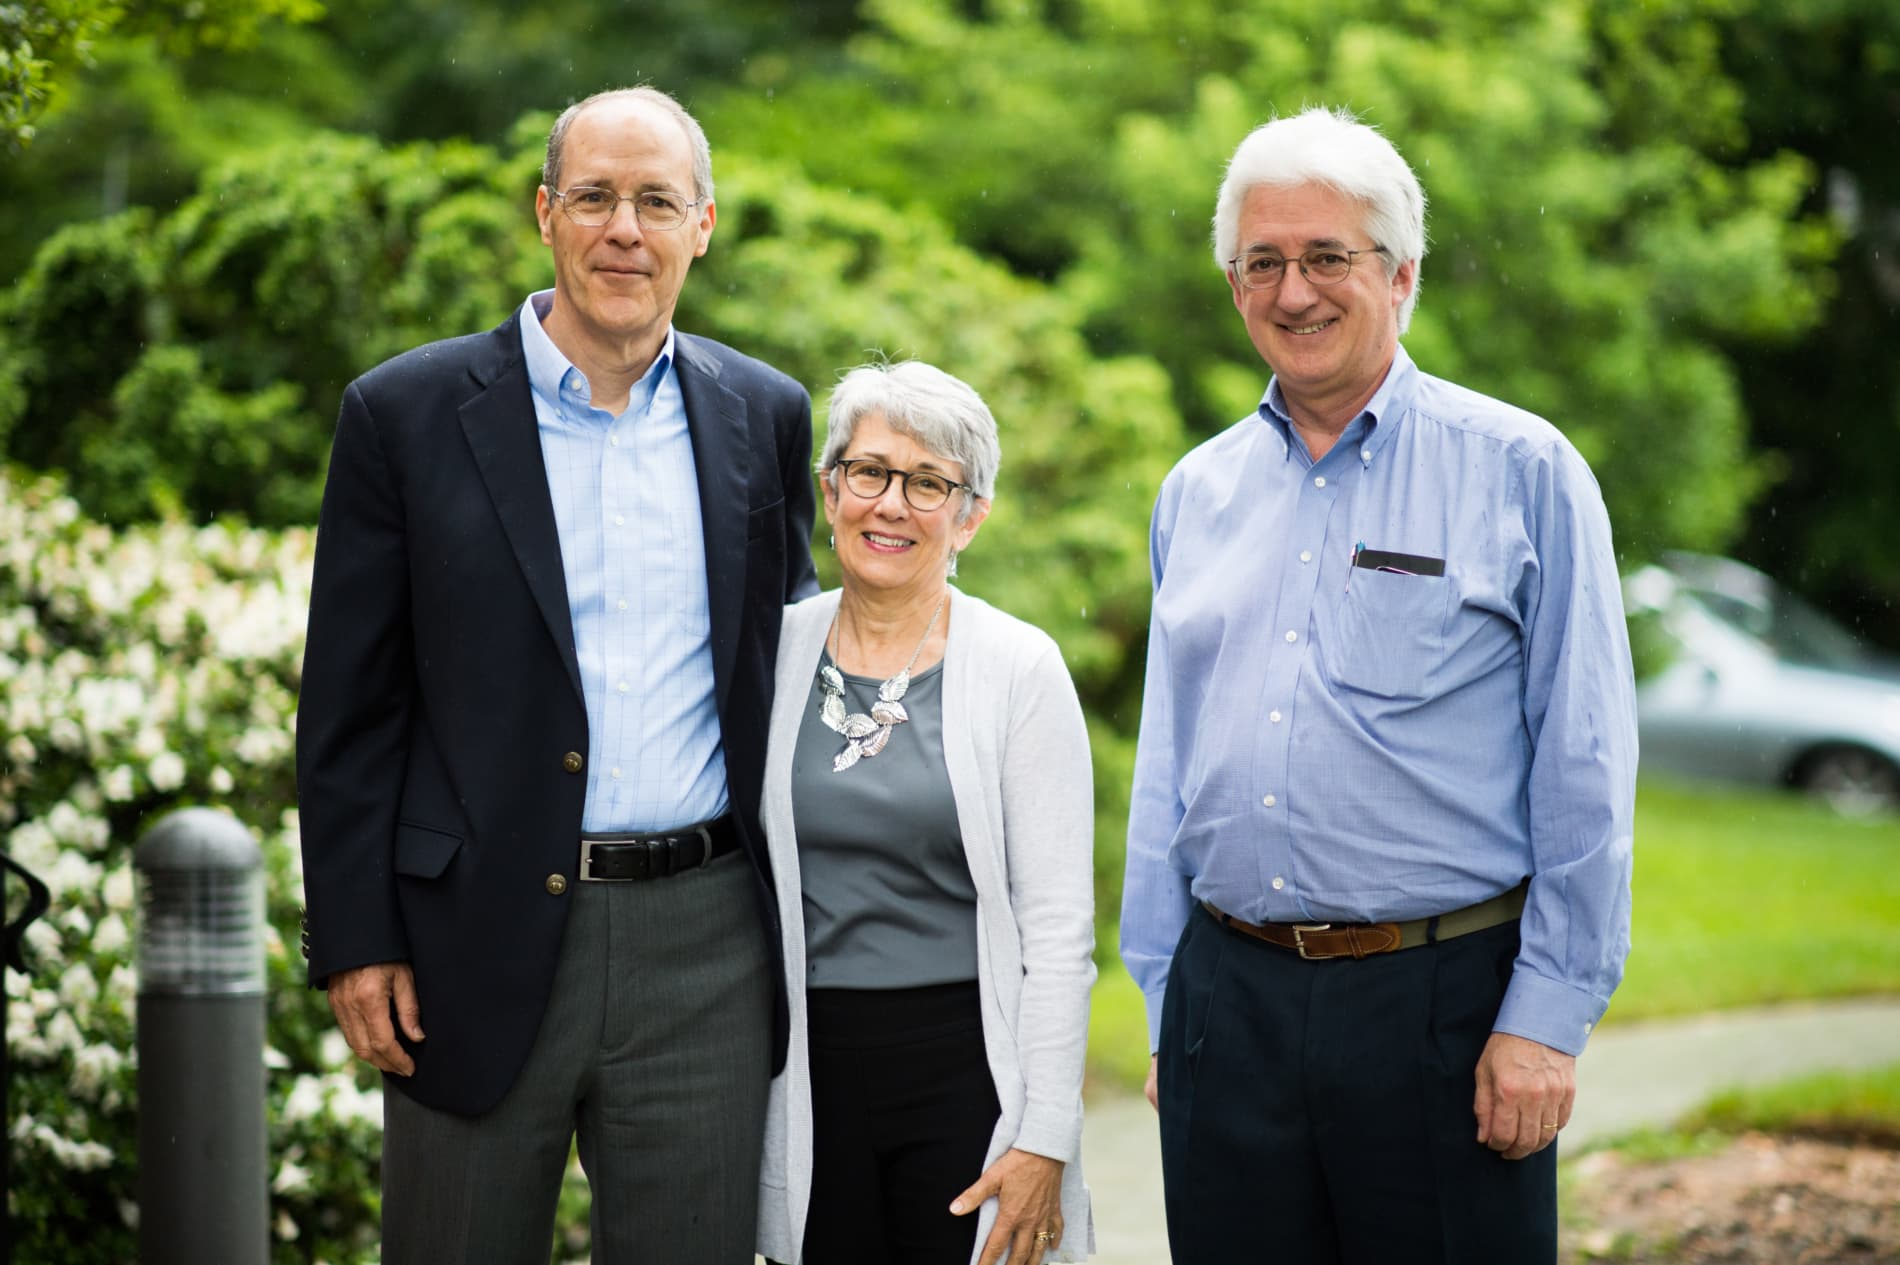 Two older men and an older woman